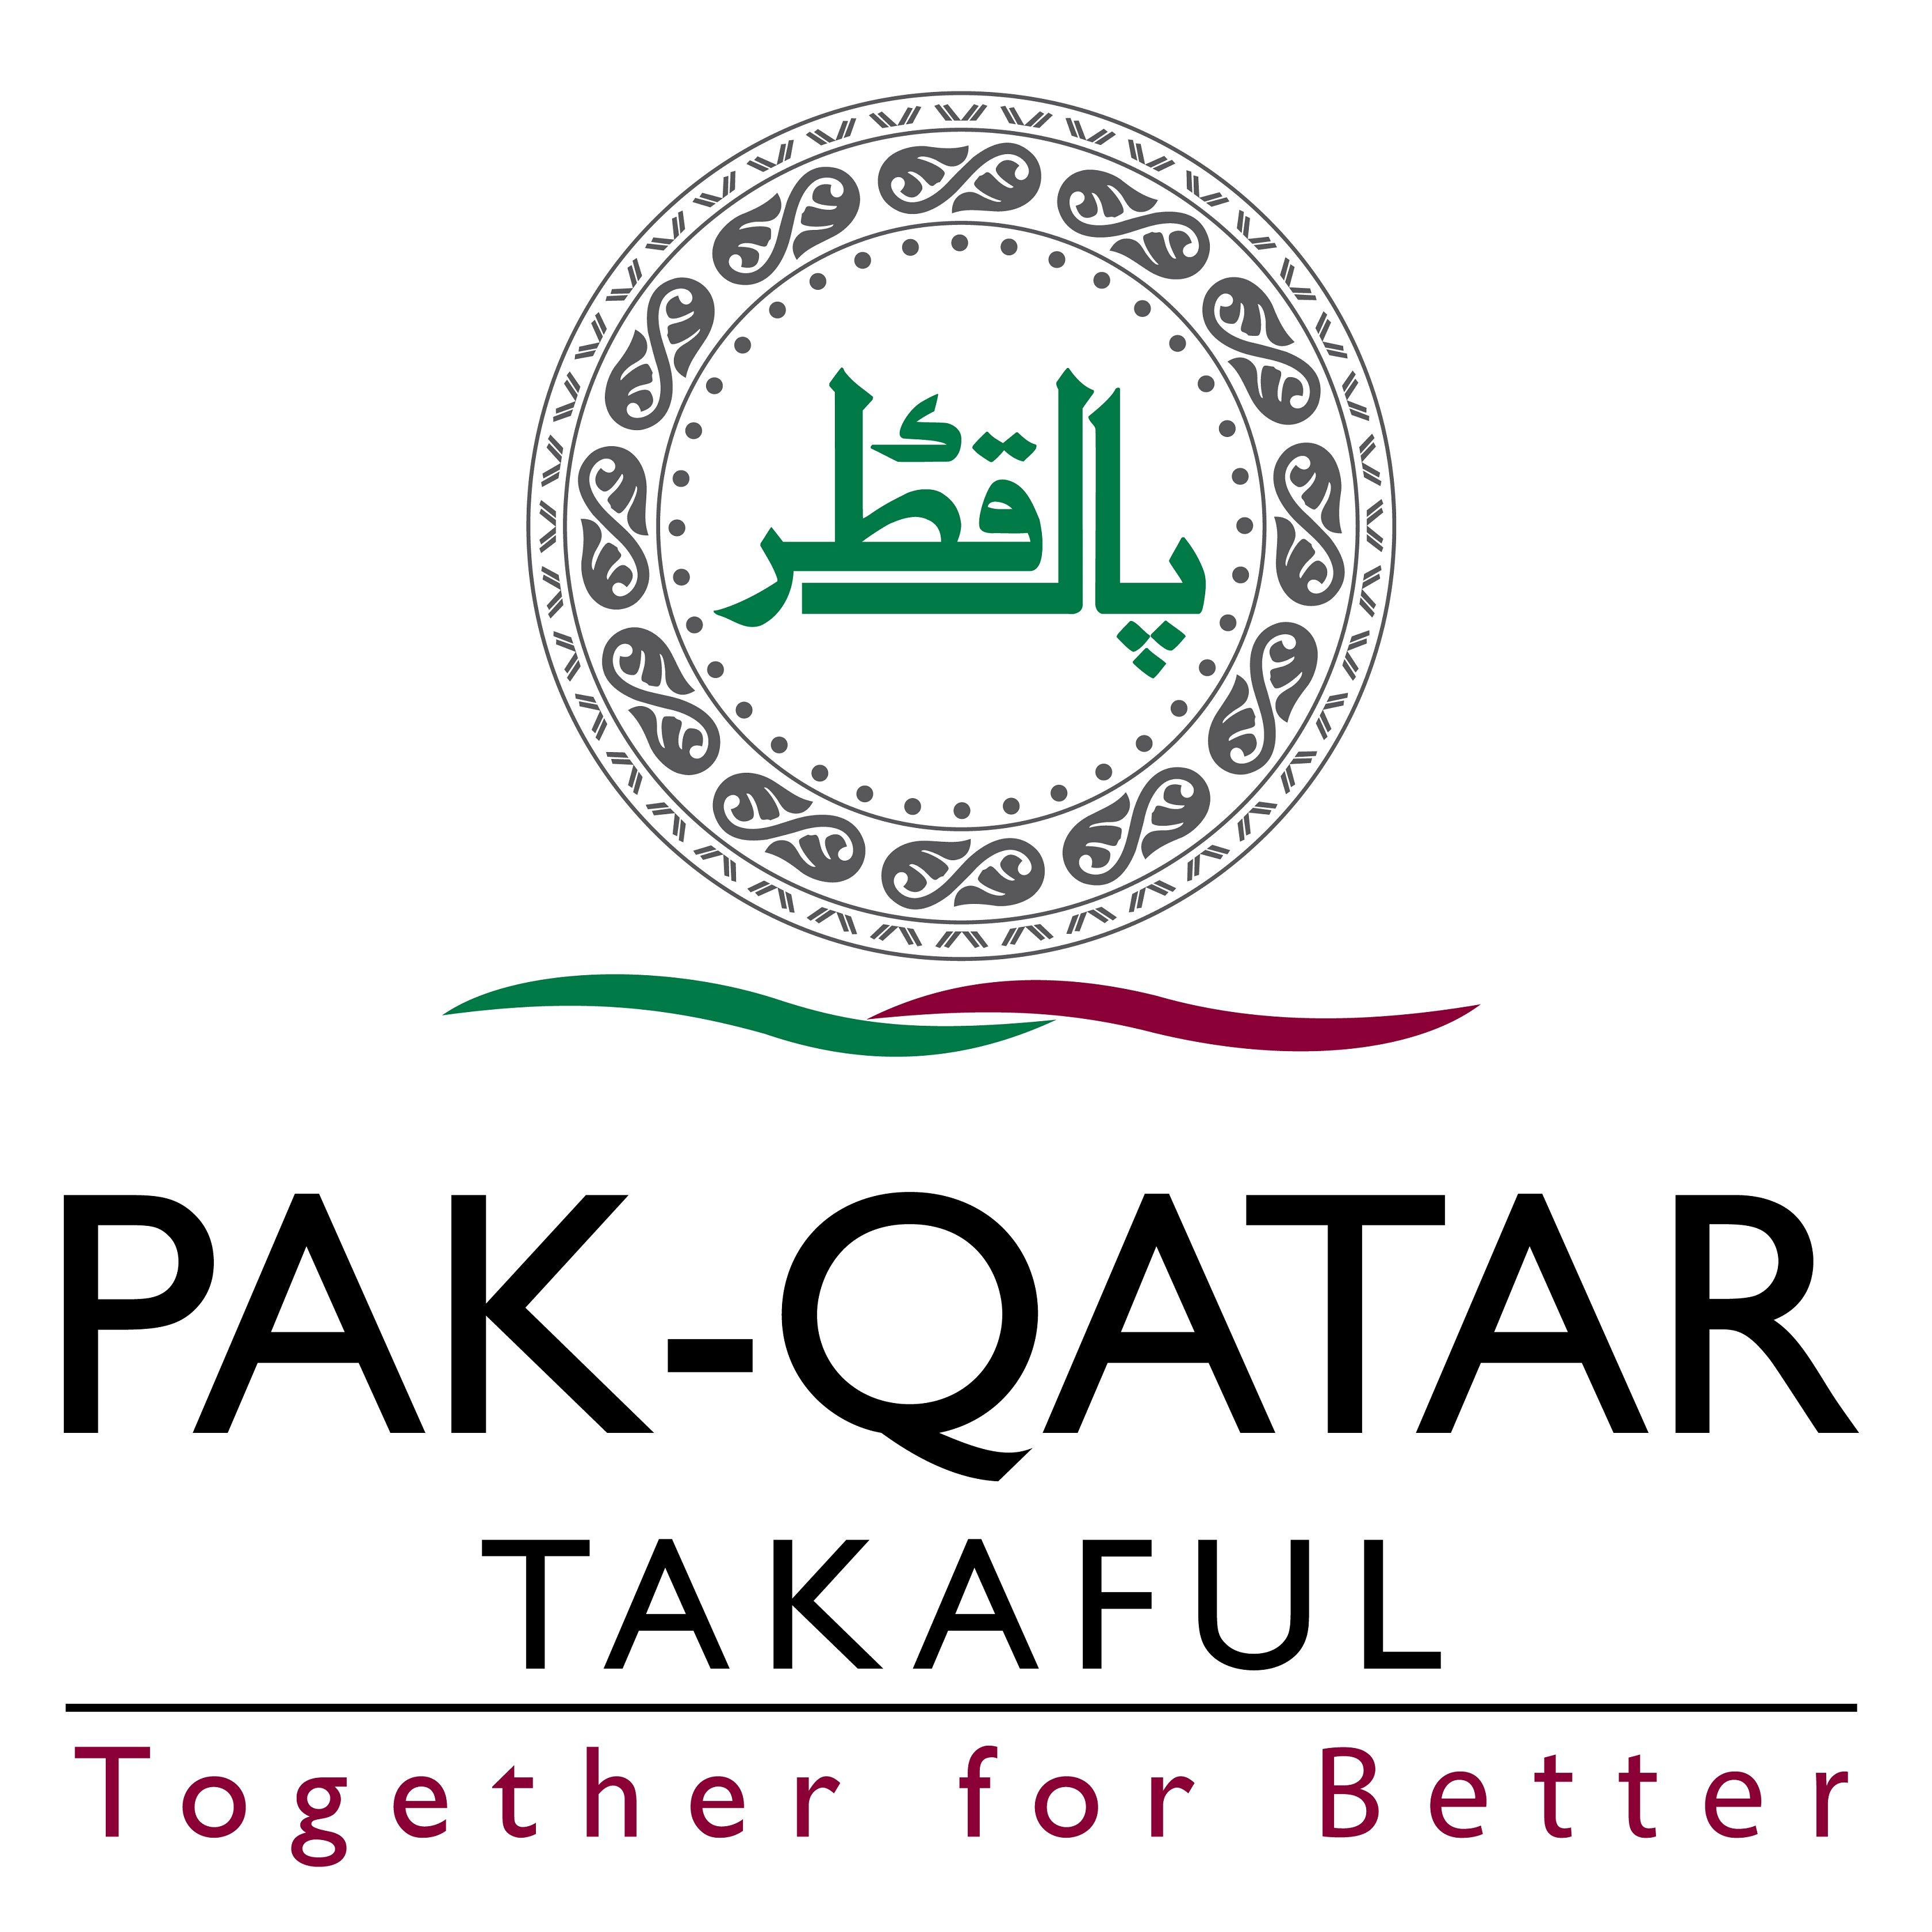 http://www.pakpositions.com/company/pakqatar-family-takaful-limited-1573473015